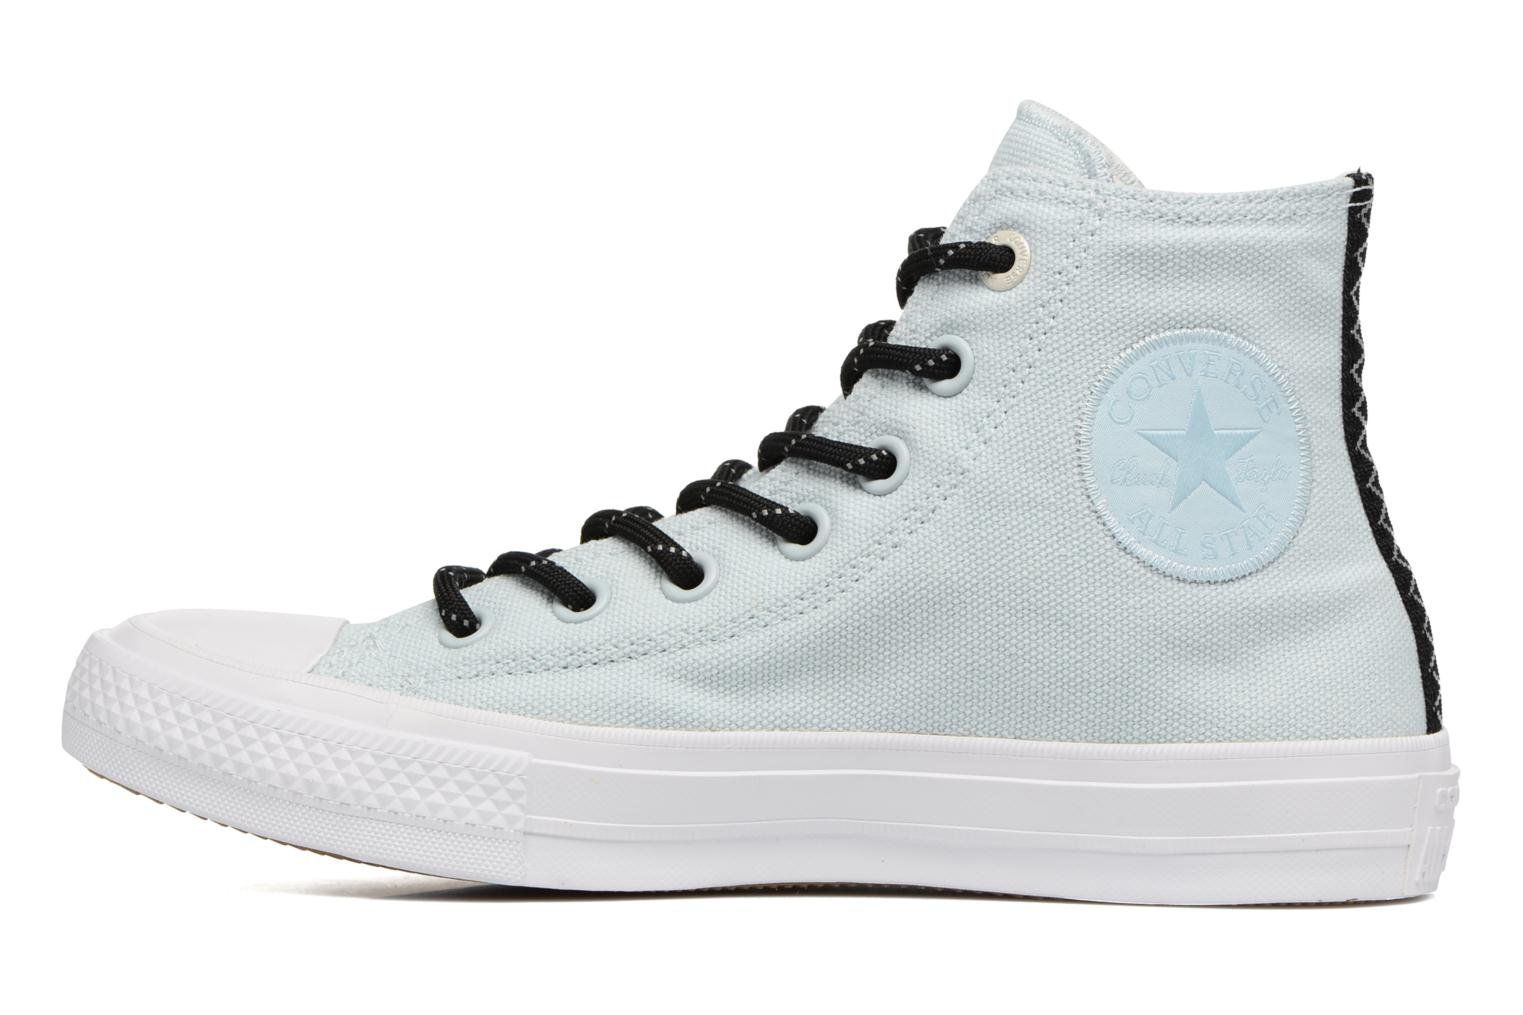 W White Taylor Star All Lycra Blue Hi Chuck Converse Buff Polar Shield II qO75wW8Rx